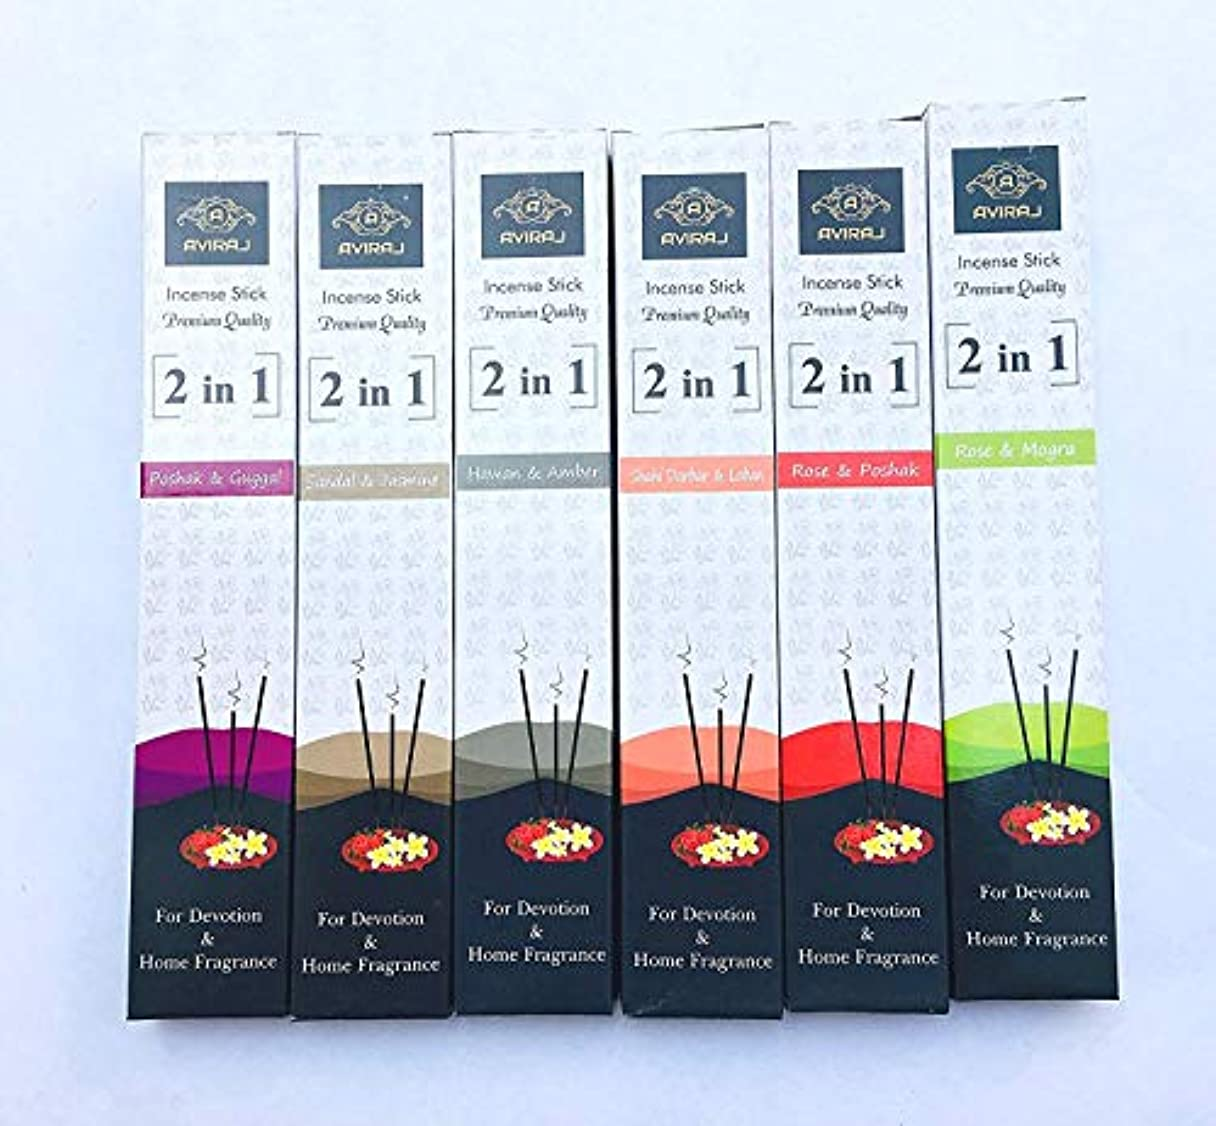 感謝する大通りスポンサーAviraj Premium Incense Agarbatti Sticks - 2 in 1 (Pack of 6) Use for Devotion, Yoga and home Fragrance